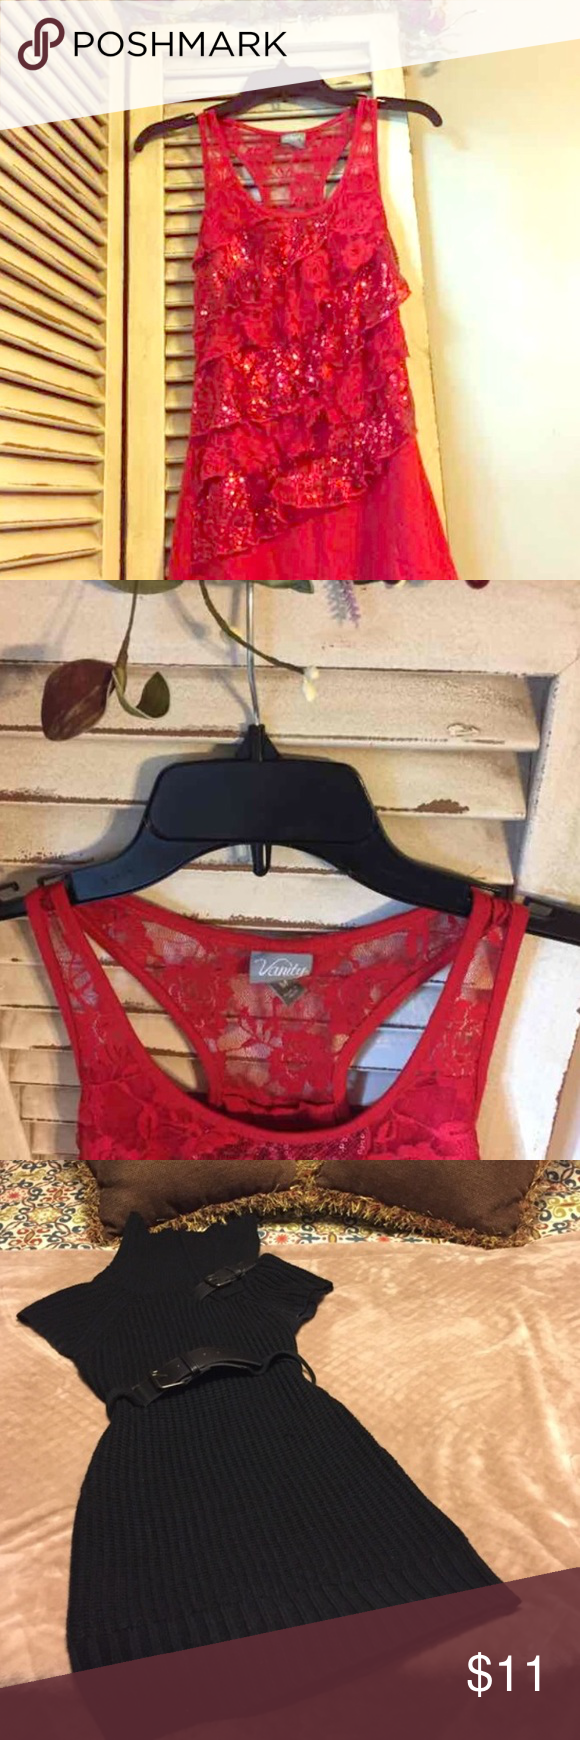 BUNDLE OF TWO! Vanity Top & Derek Heart Dress Sexy & Sophisticated Vanity Tiered Red Lace Top. Excellent Condition w/no signs of fading or wear.No defects. AND Women's or Junior's Size Medium Derek Heart Black Sweater Dress. Size on tag reads Medium, however this dress fits size Small. I would say women's sizes 2-4 would fit this dress perfectly. Excellent used condition with little to no signs of fading or wear. From smoke free, pet free and odor free home. BUNDLE & SAVE! Derek Heart Tops